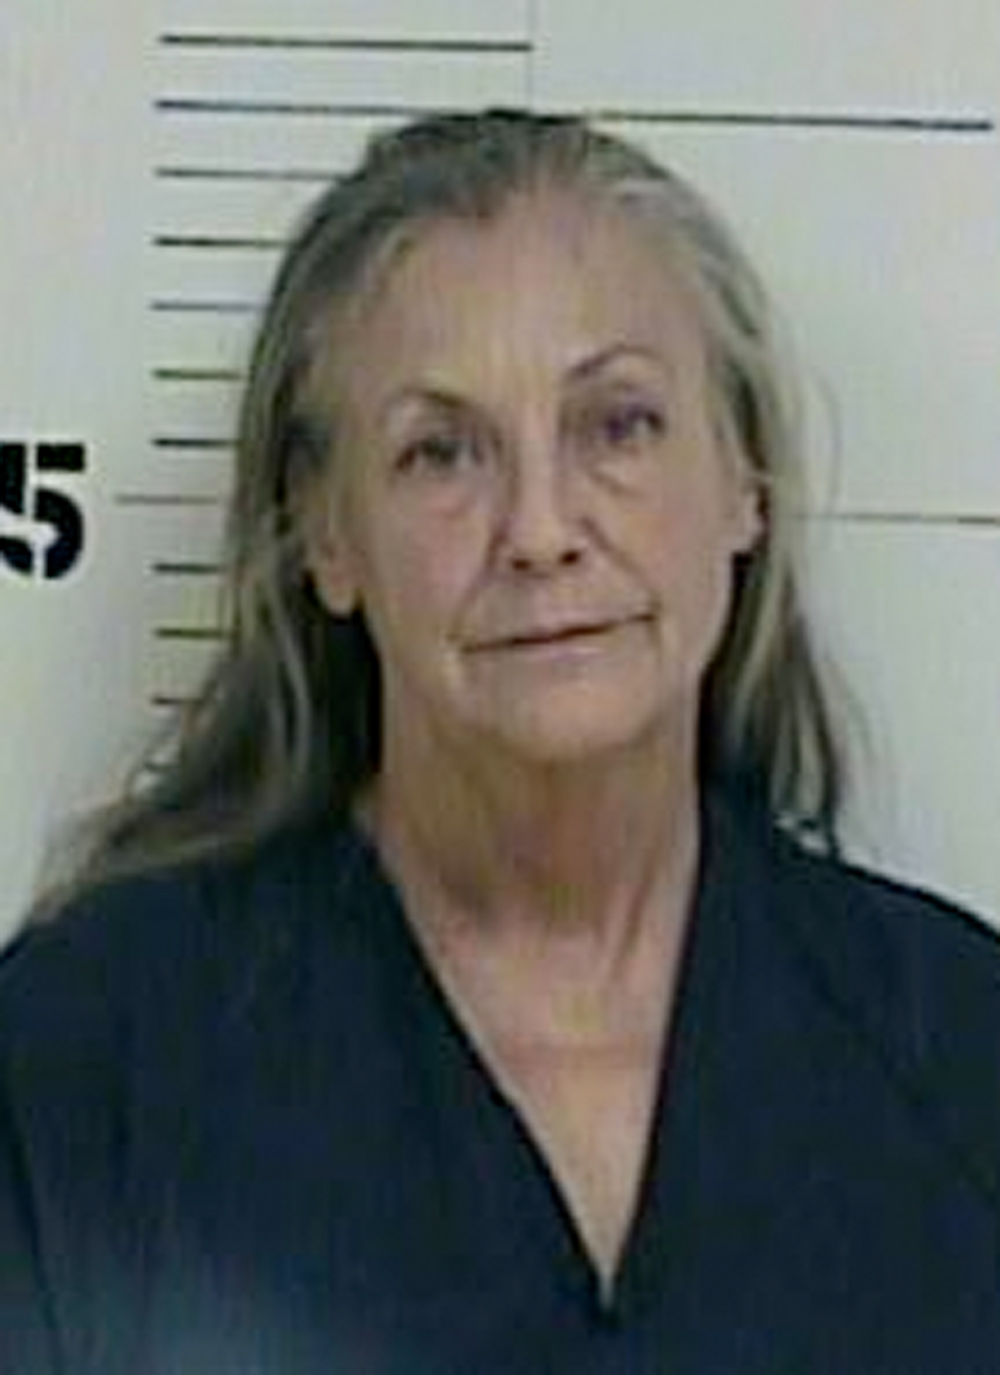 Alice Walton The Daughter Of Walmart Founder Sam Was Arrested And Charged With Driving While Intoxicated Speeding